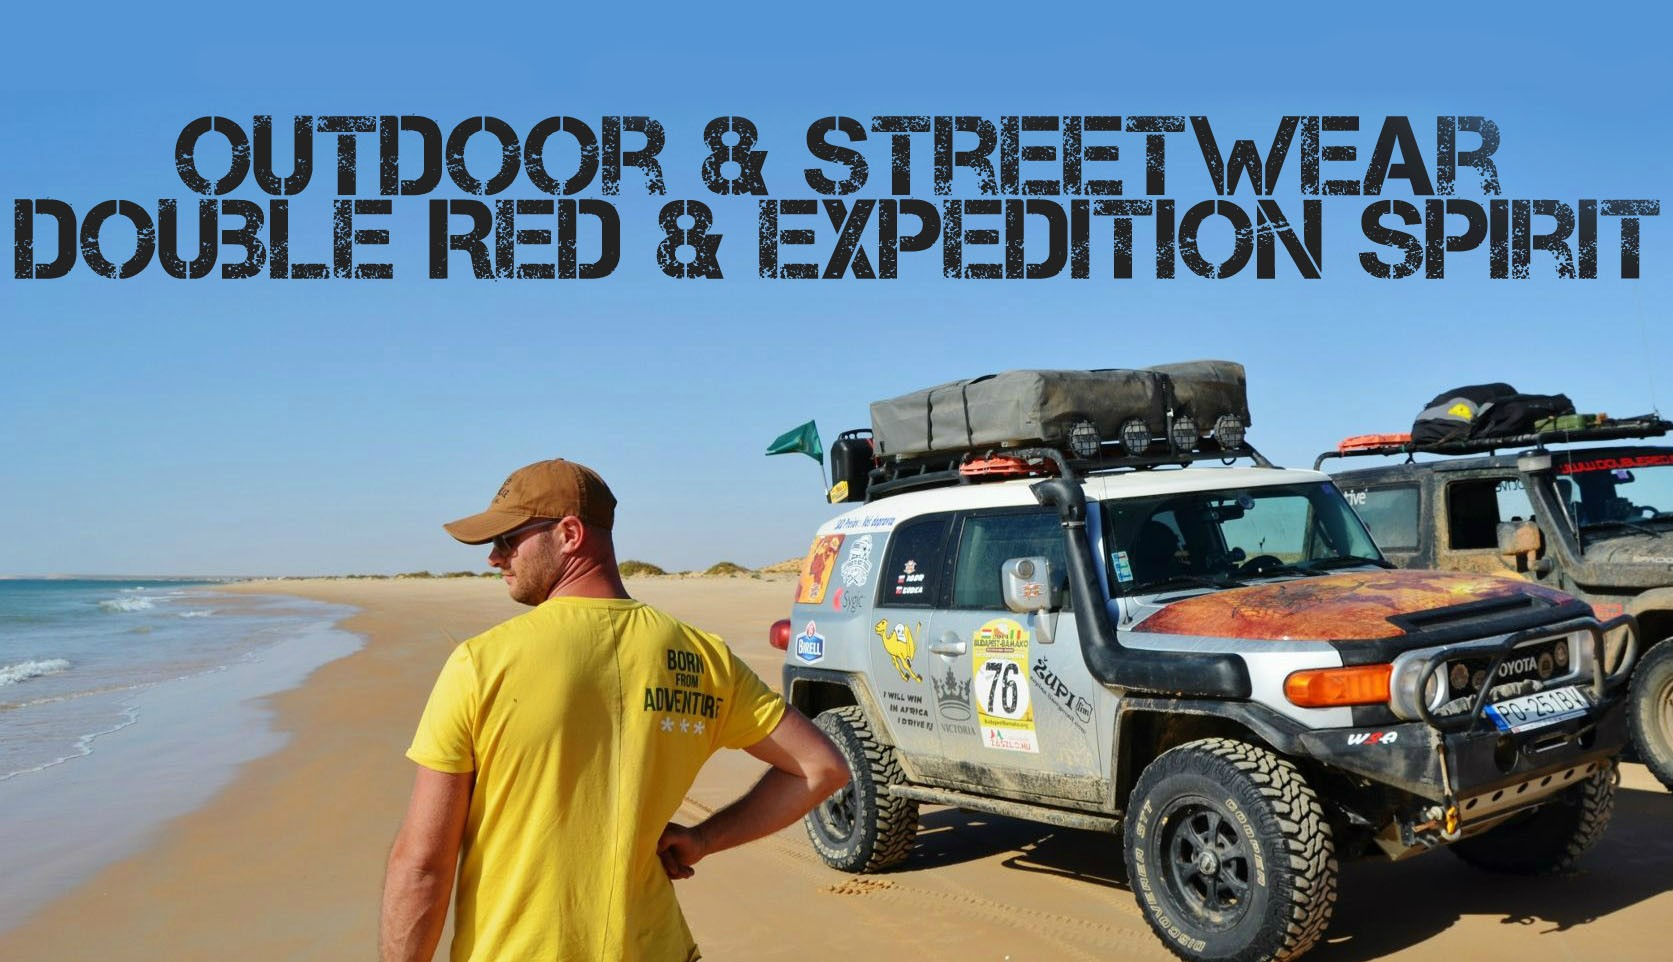 STREETWEAR and OUTDOOR CLOTHES DOUBLE RED and EXPEDITION SPIRIT